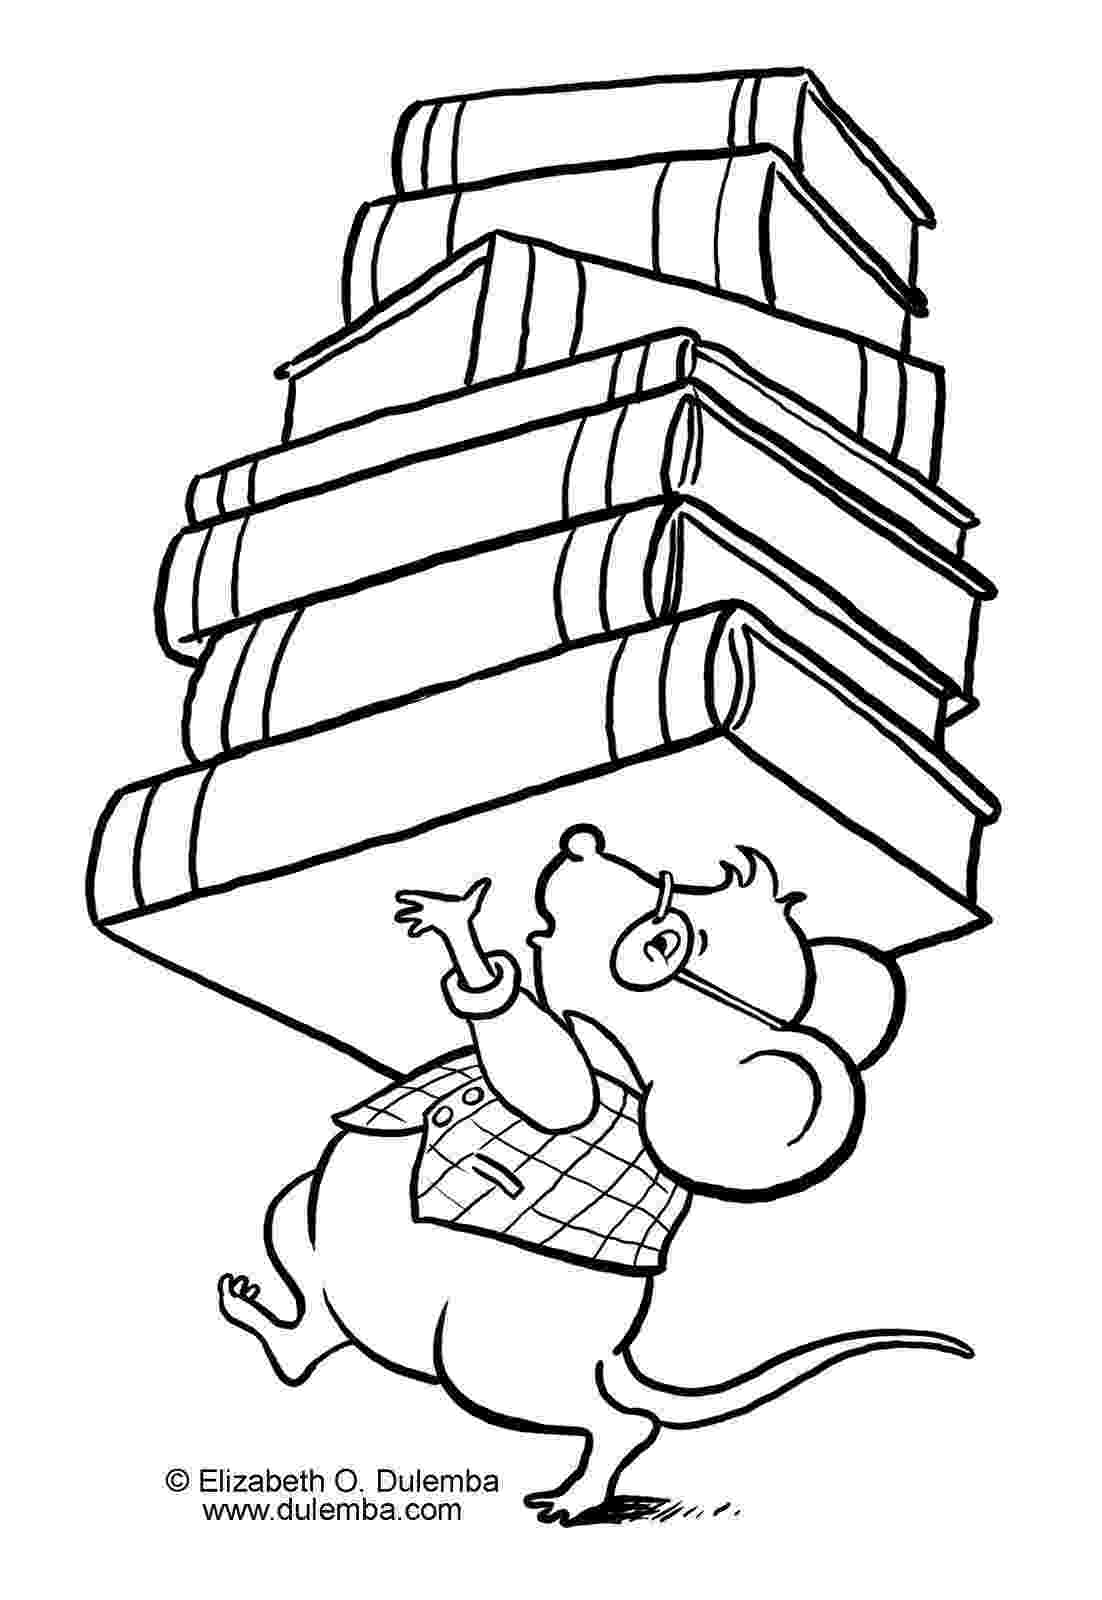 library coloring pages library coloring pages to download and print for free coloring pages library